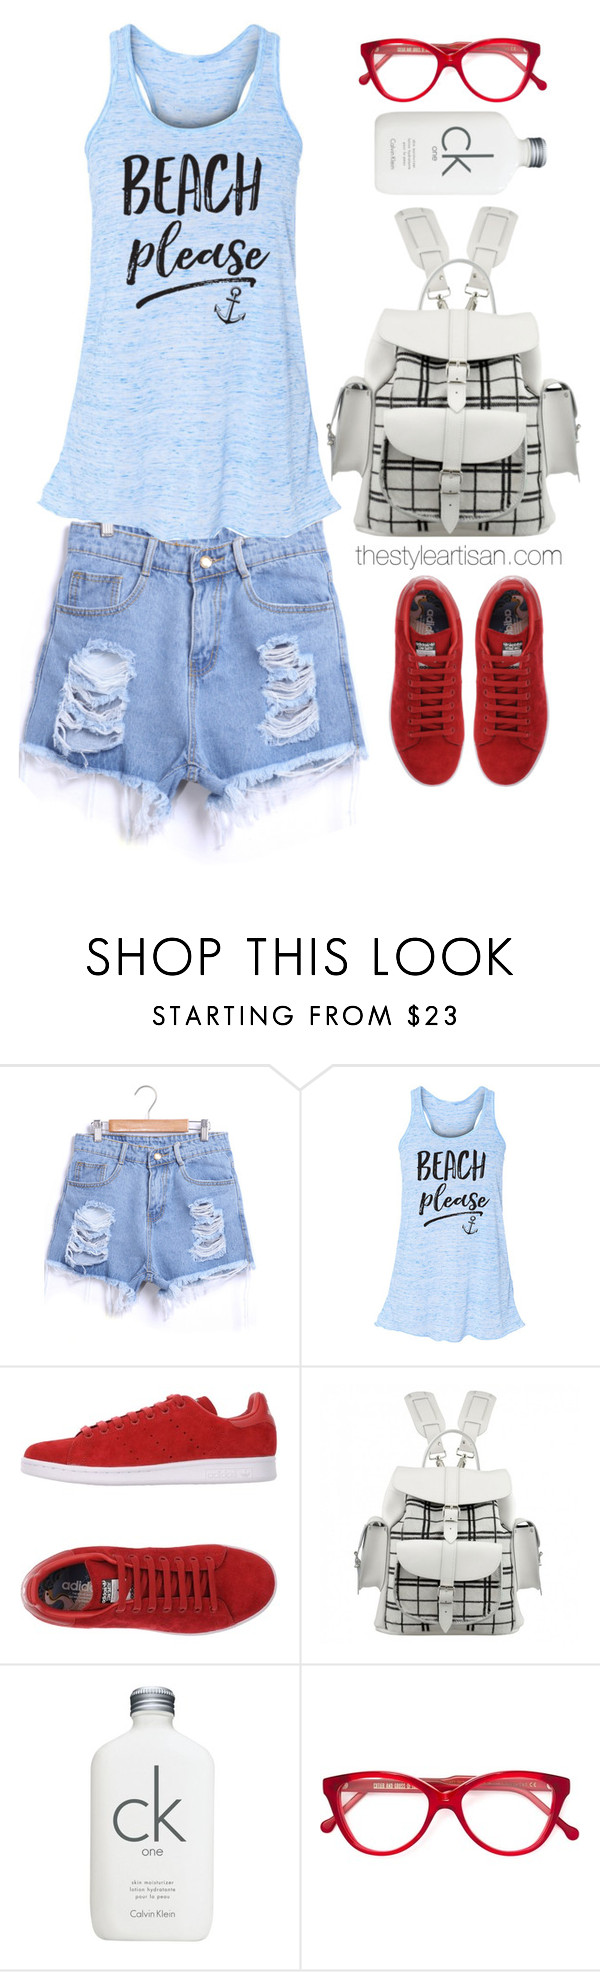 """""""Beach Please Flowy Tank Top Mermaid Shirt Mermaid Summer Tank Beach"""" by thestyleartisan ❤ liked on Polyvore featuring adidas Originals, Grafea, Calvin Klein, Cutler and Gross, redwhiteandblue and july4th"""